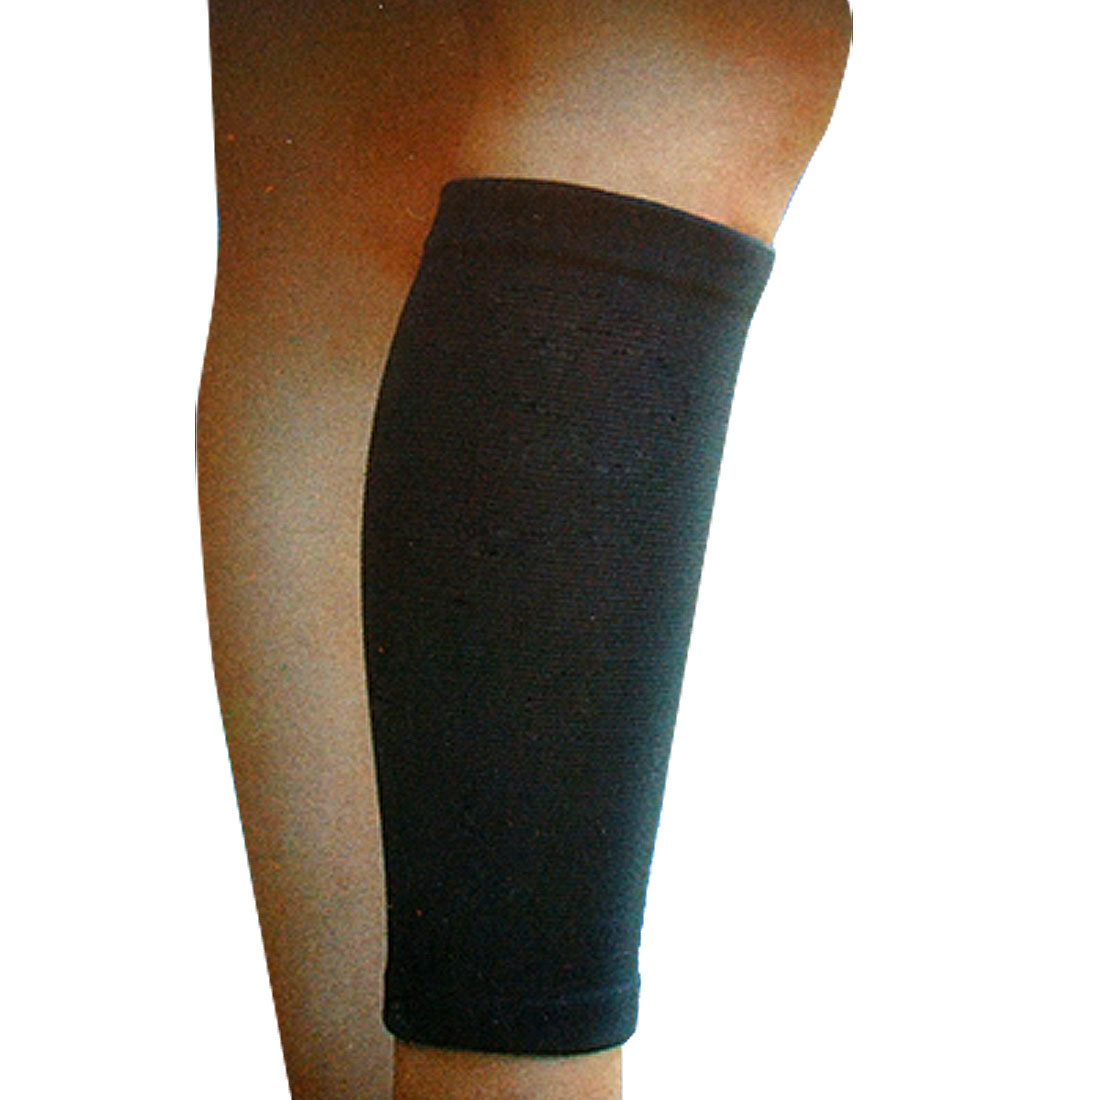 Running Cycling Elastic Fabric Calf Leg Sleeves Support Protector Black